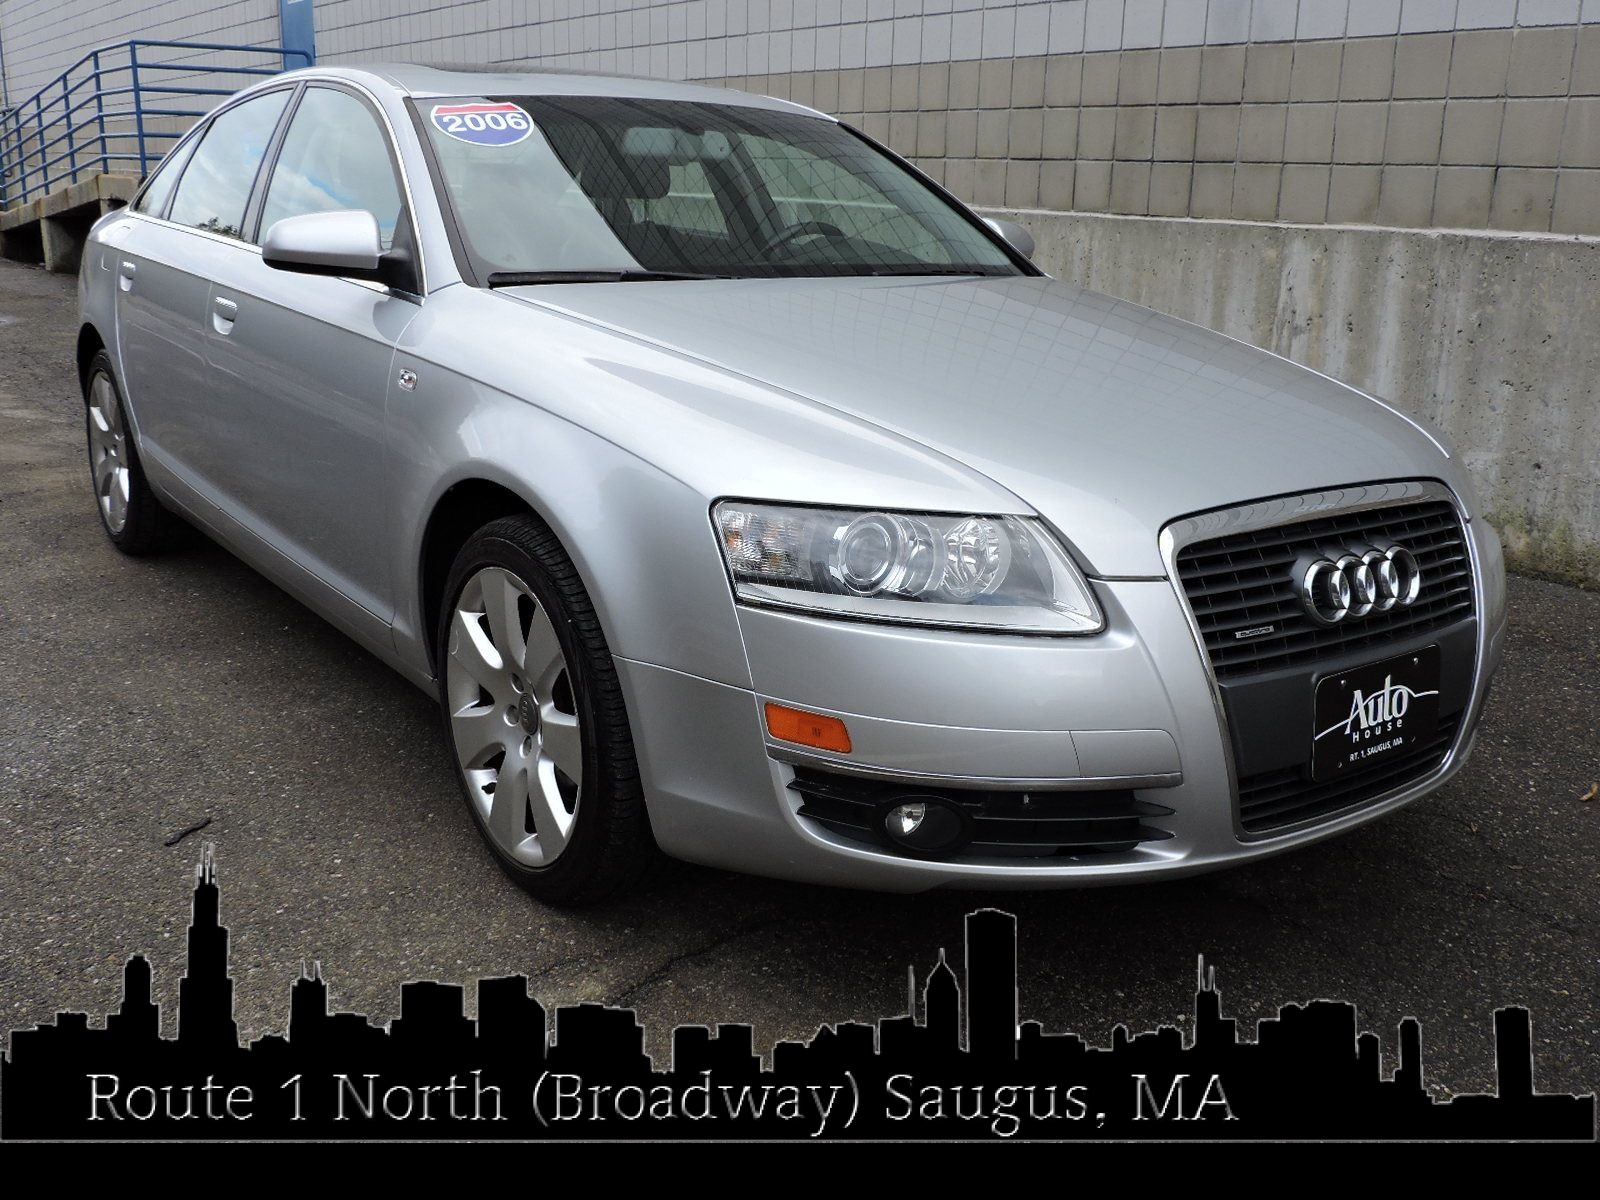 used 2006 audi a6 3.2l at saugus auto mall